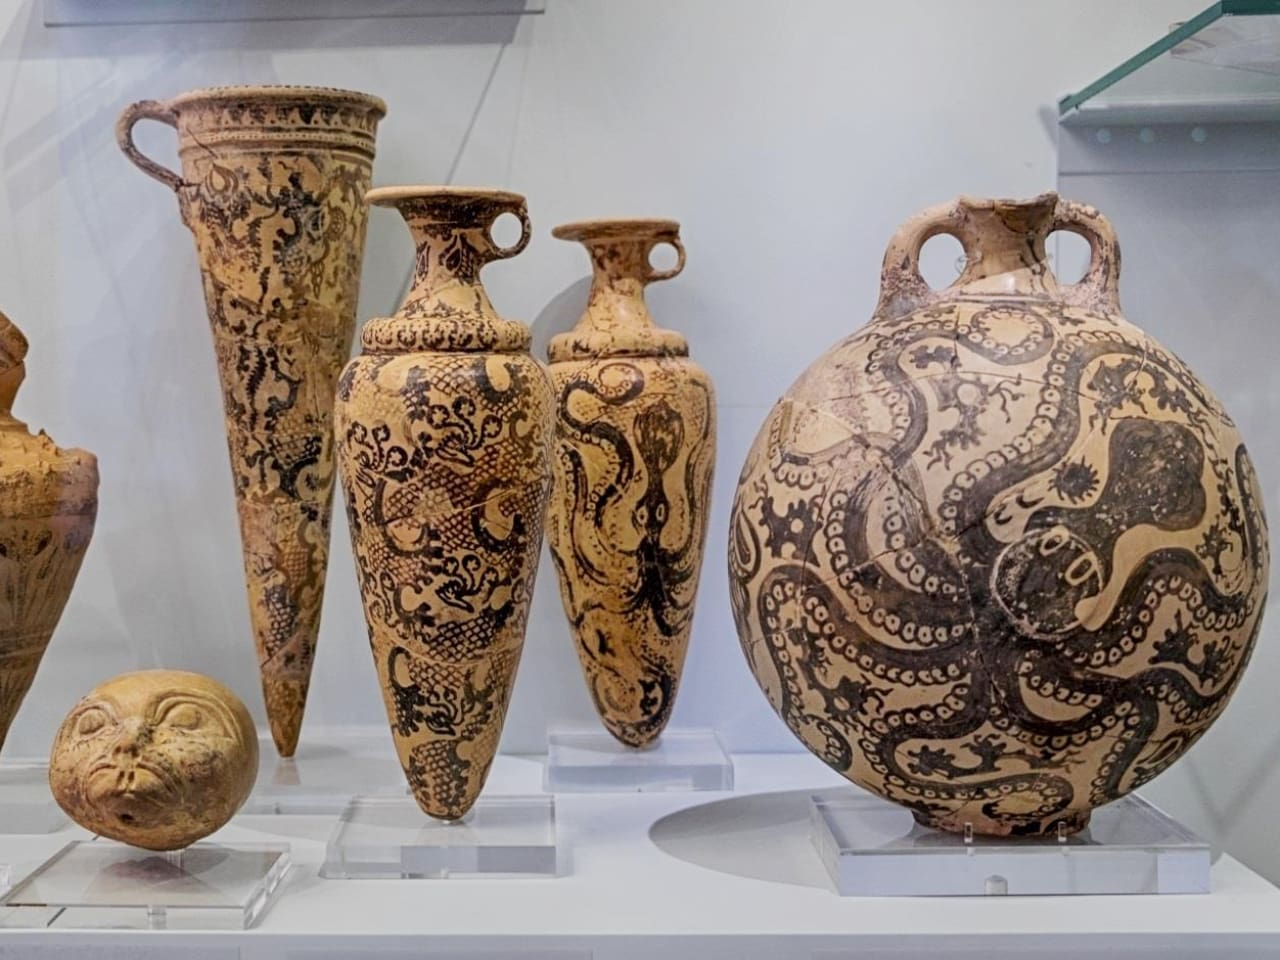 archaeological museum heraklion, Heraklion travel guide, iraklion travel guide, heraklion things to do, heraklion activities, history of heraklion, museums heraklion, restaurants iraklion, events heraklion, travel tips heraklion, heraklion tours, crete travel, the crete you are looking for